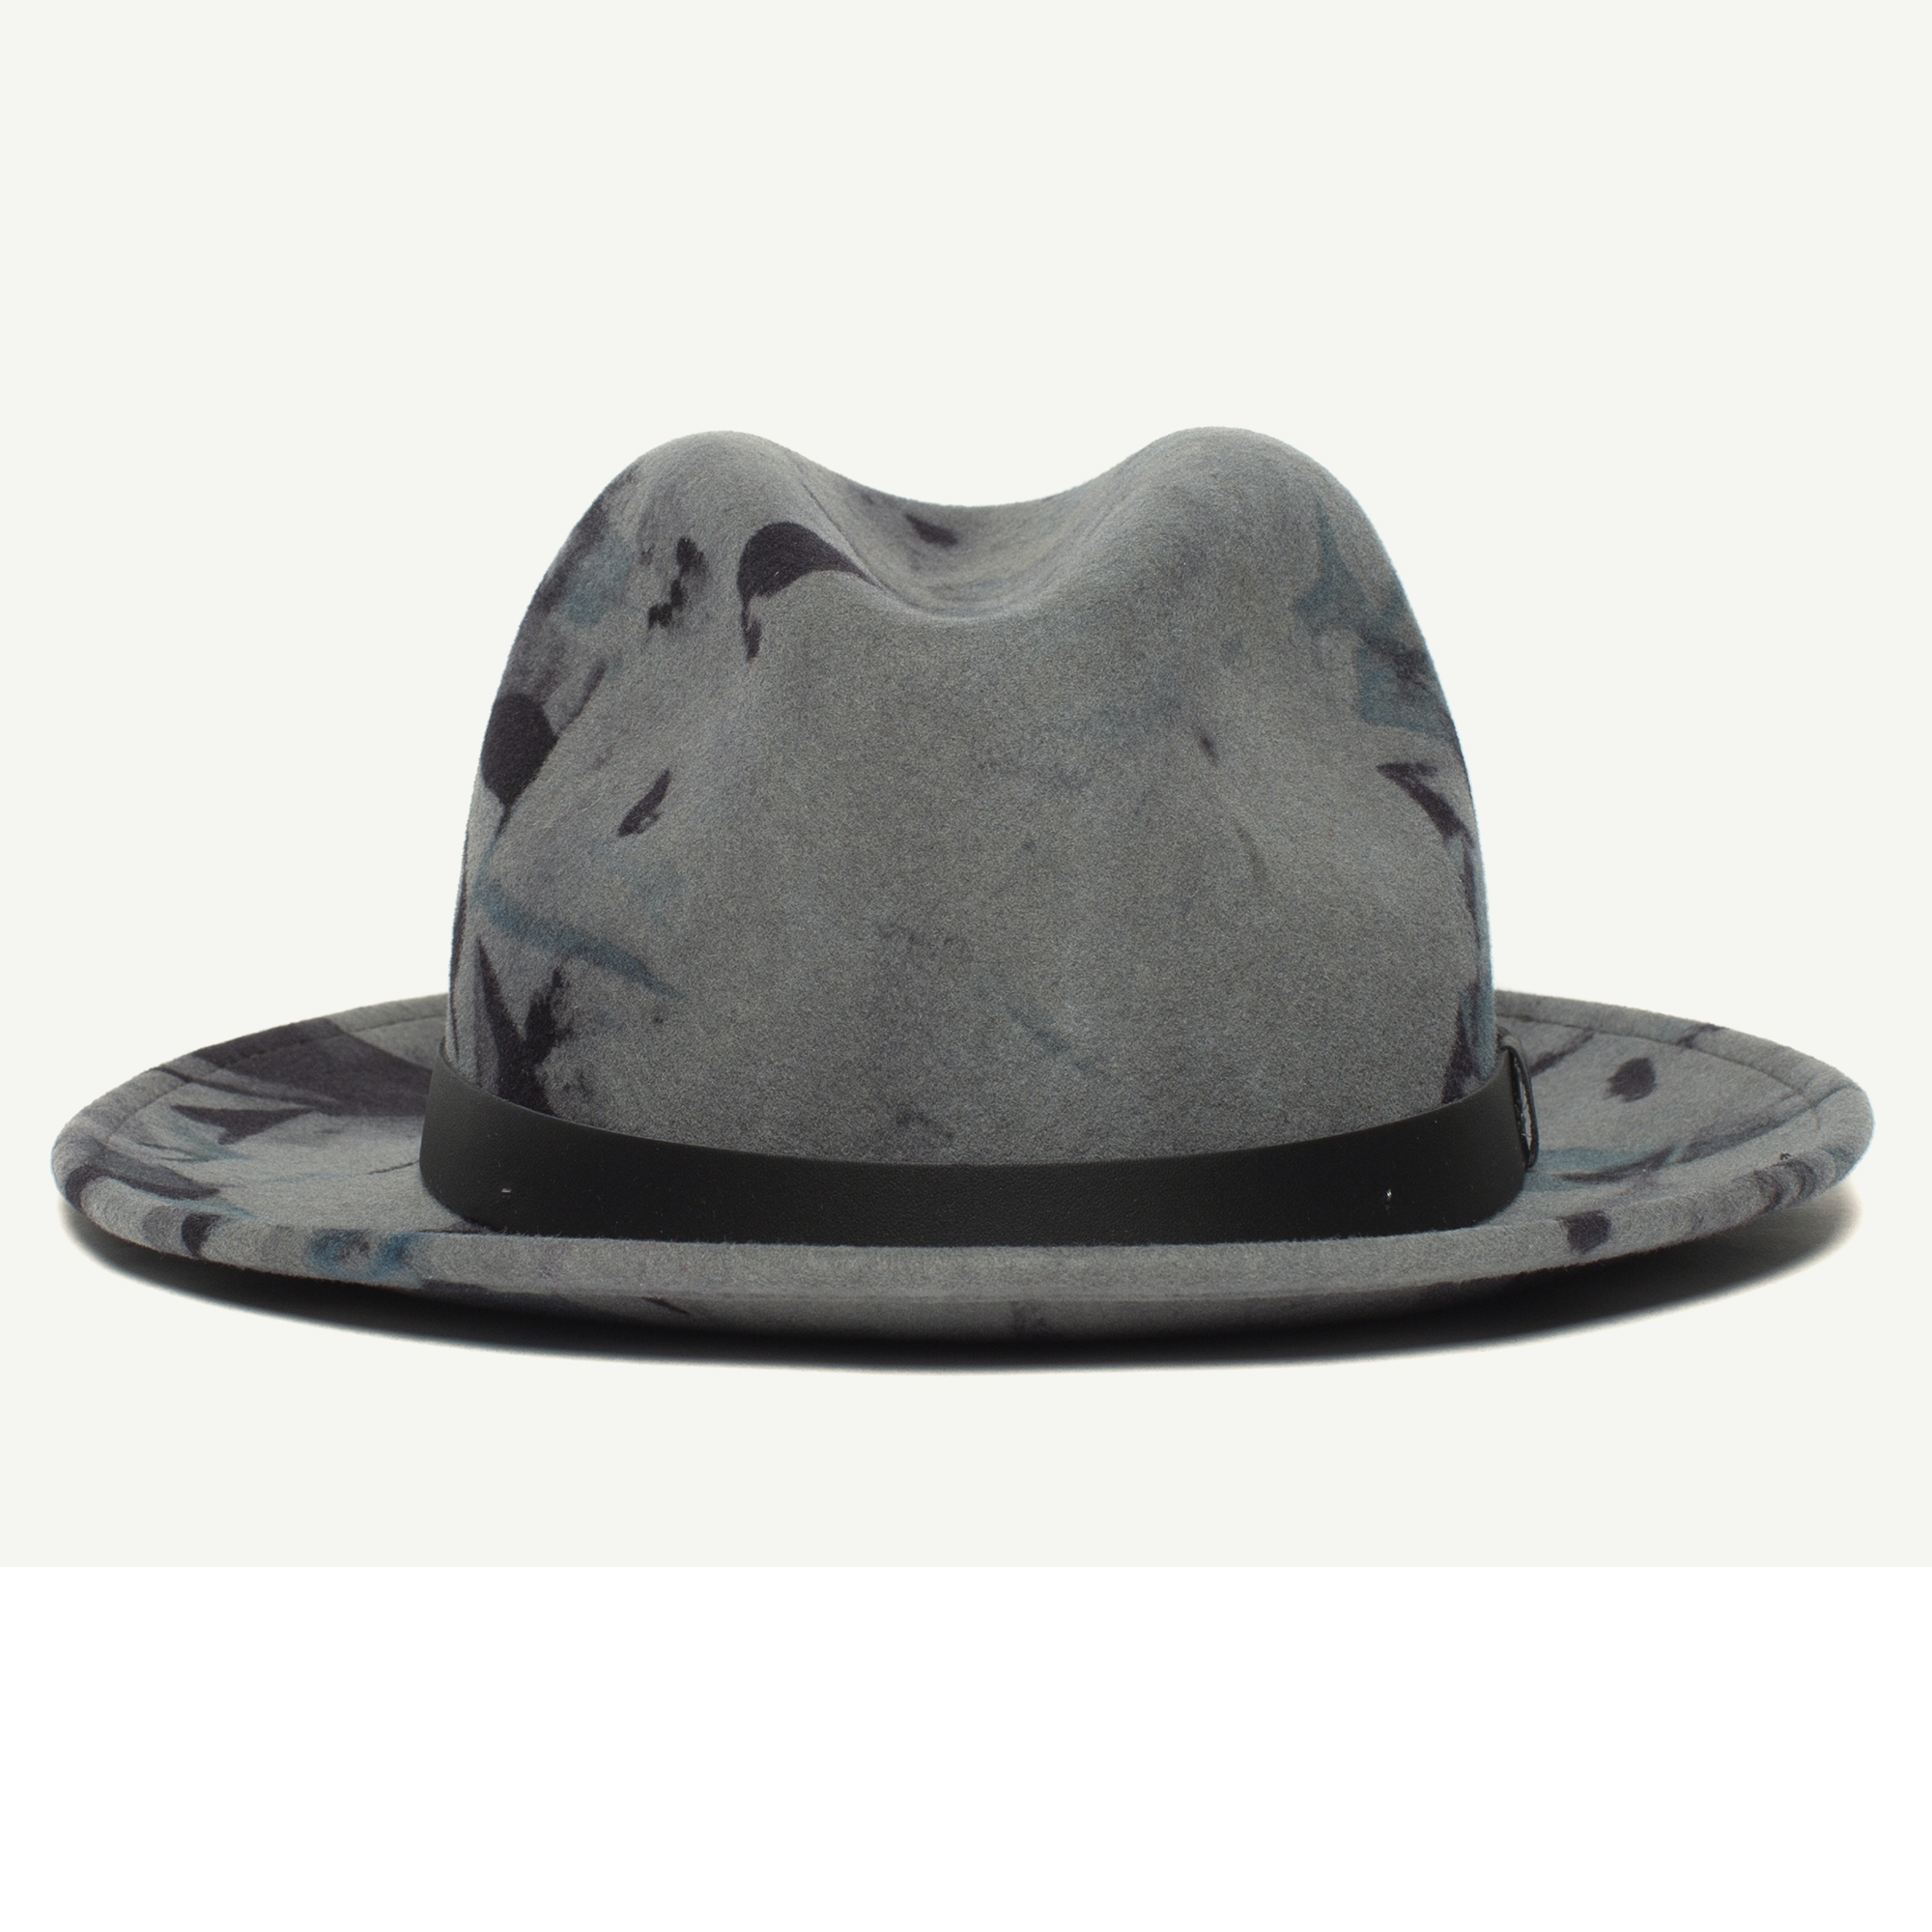 51ad69f8dabbc Dean The Butcher wool wide brim fedora Men s hat made in America by Goorin  Bros.